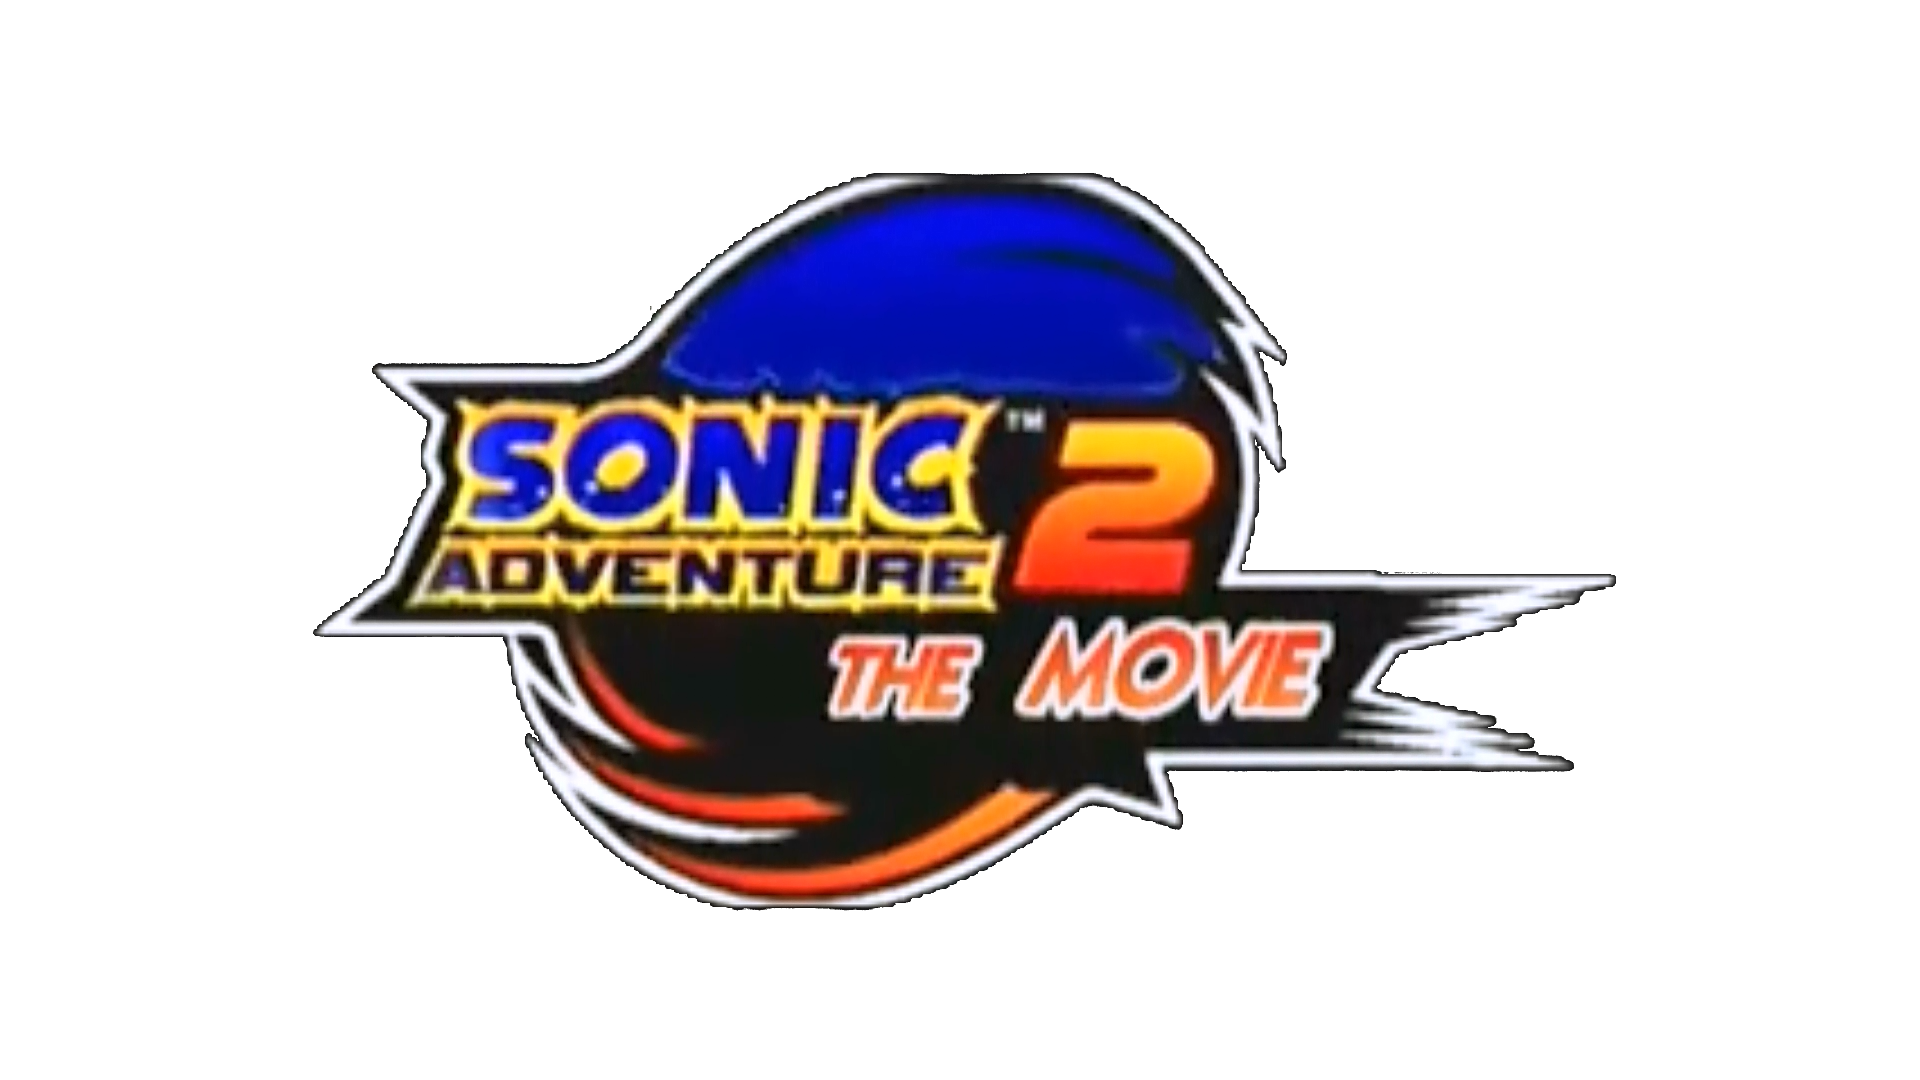 Sonic Adventure 2: The movie! - Page 3 Sonic_adventure_2_movie_by_sxr123-d578utn